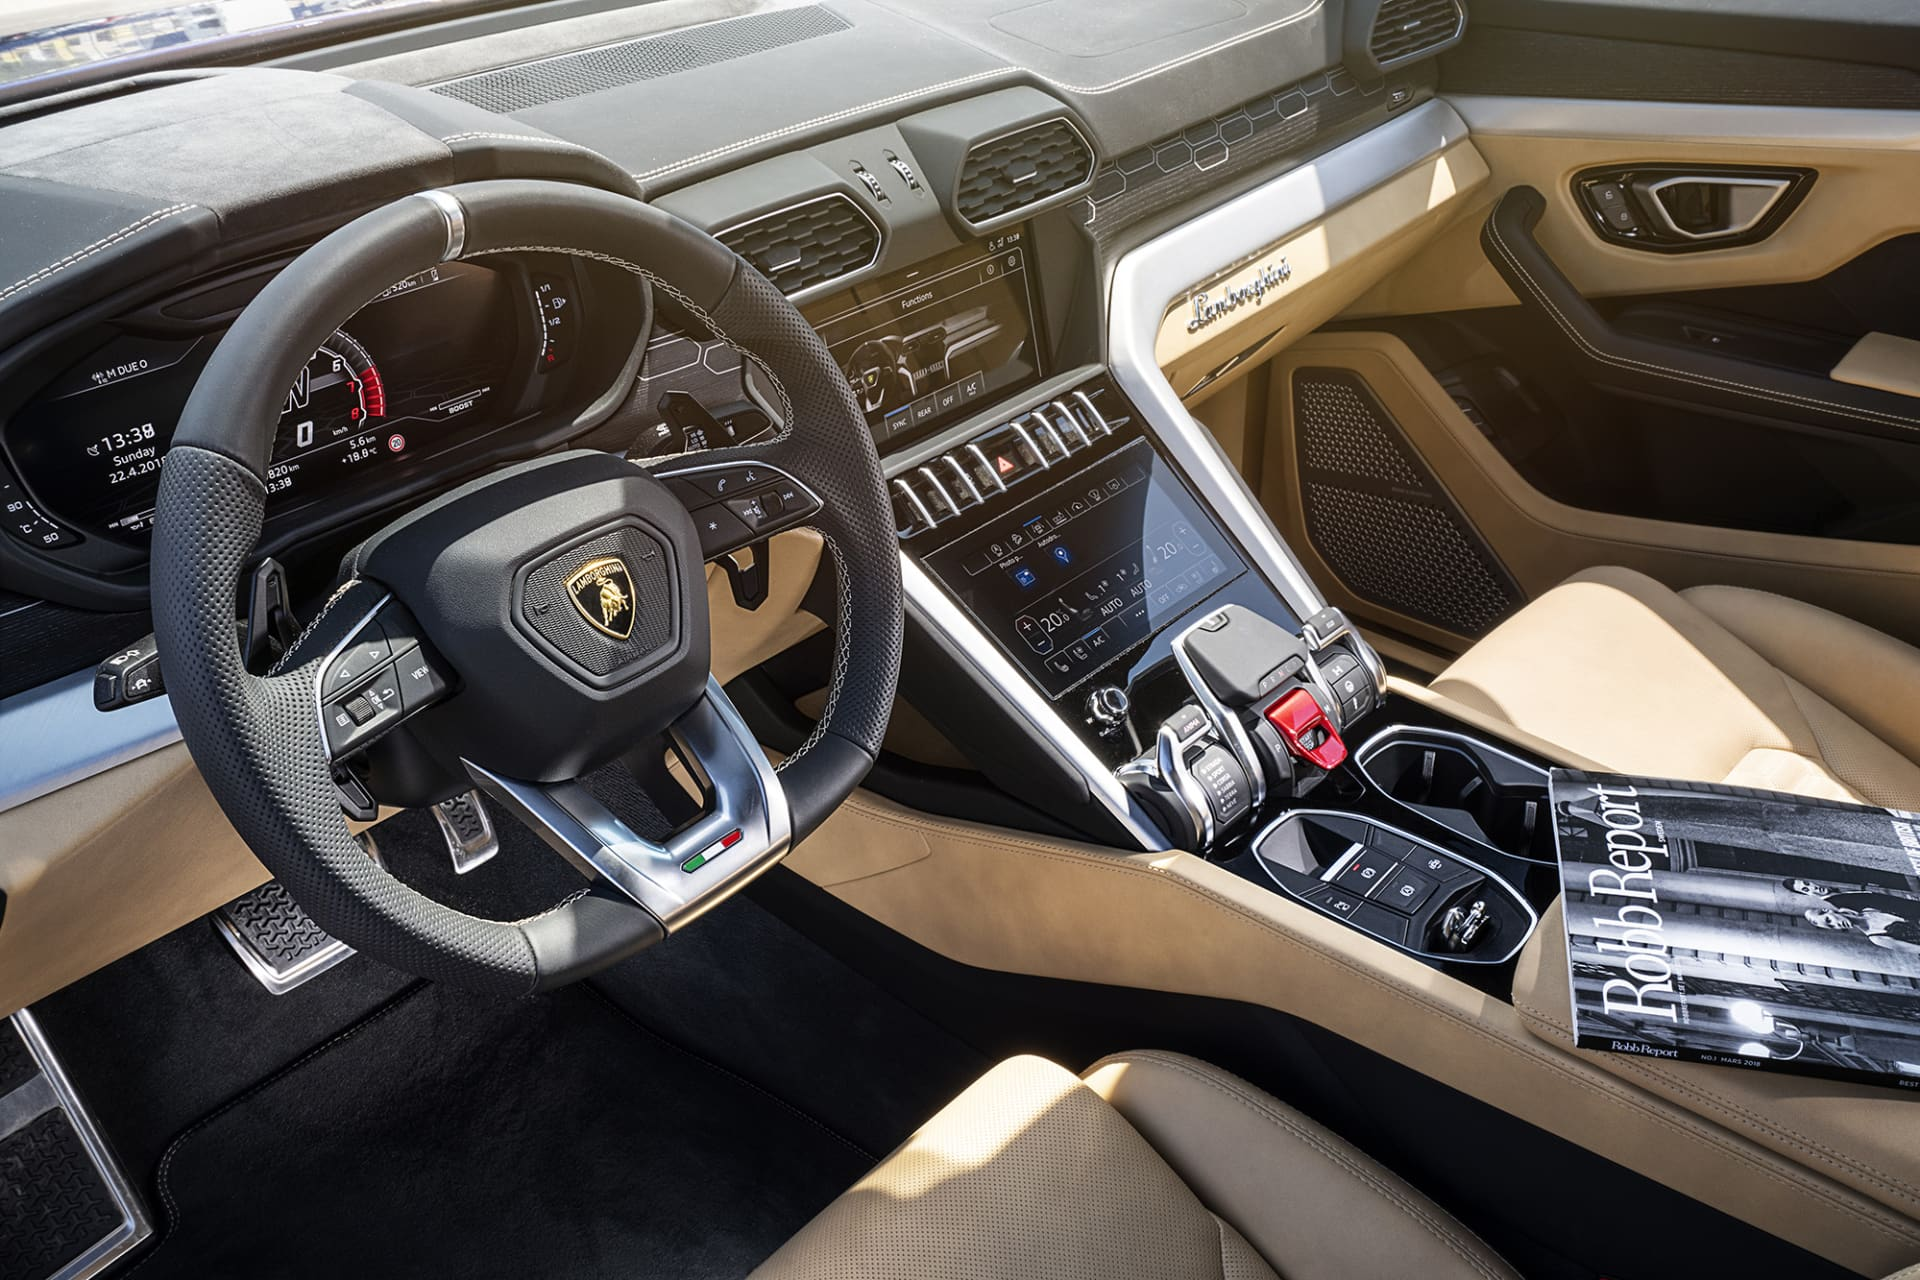 Much of the interior of Urus is more like a fighter aircraft than a car.